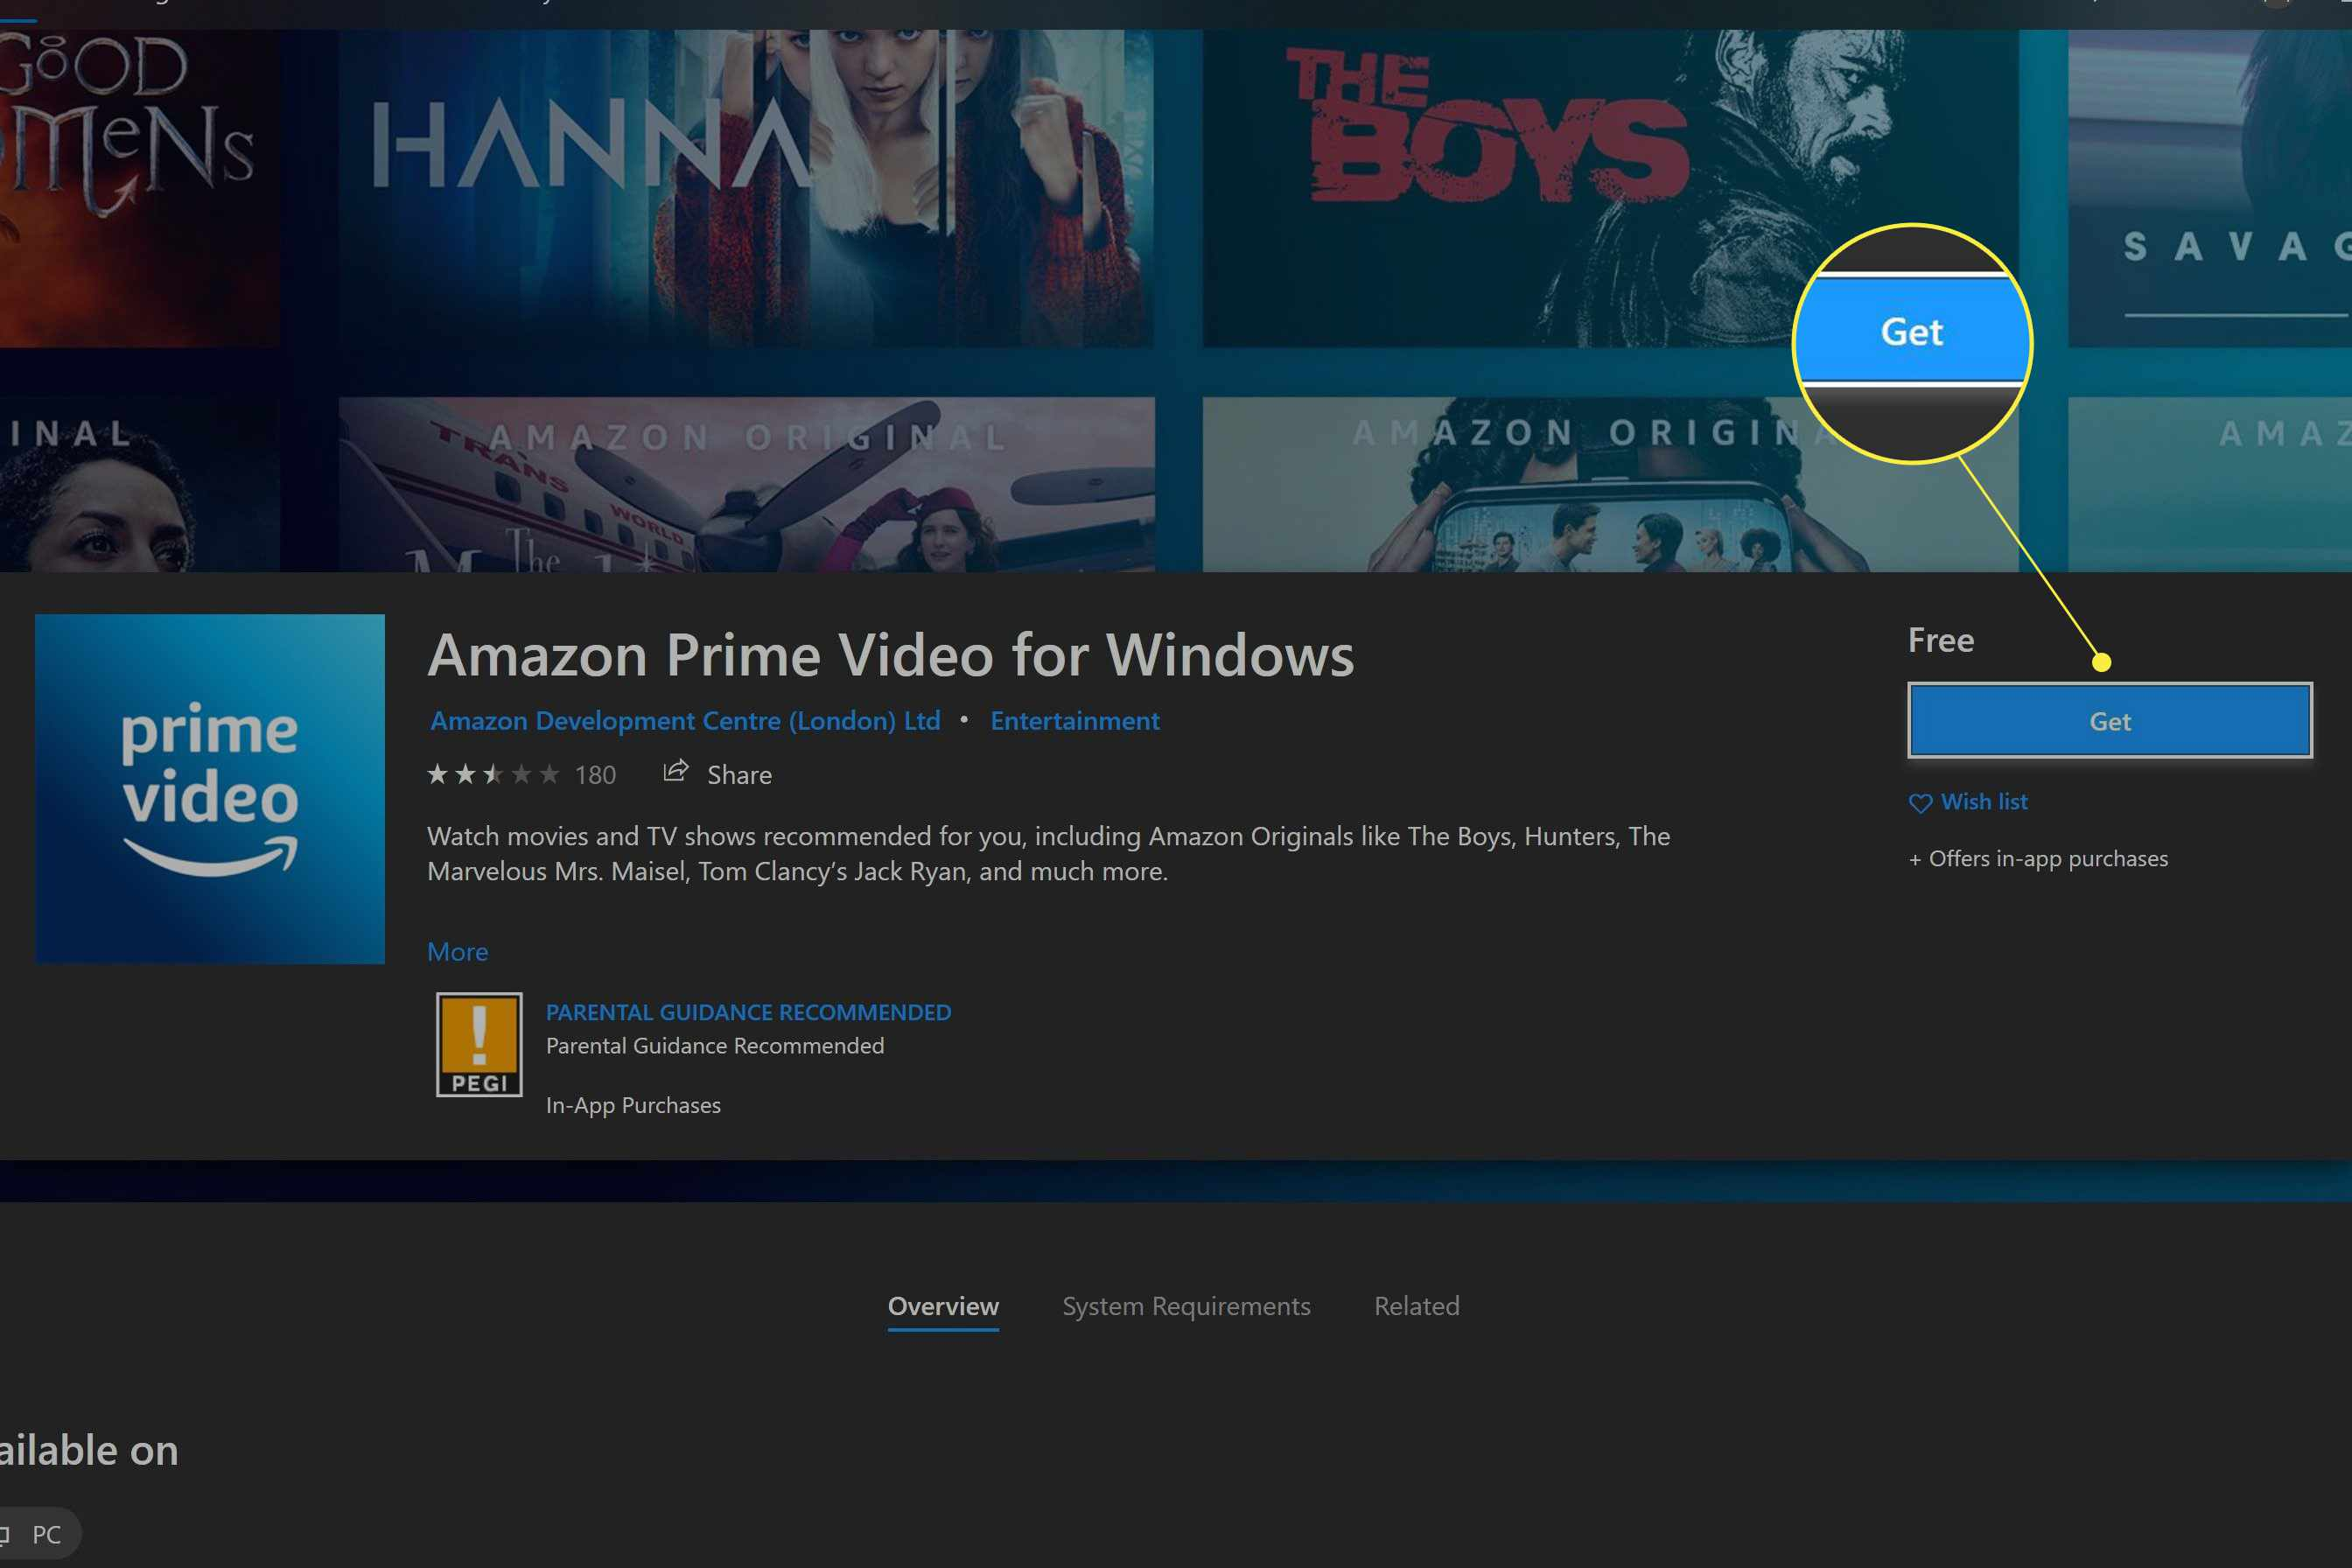 Windows Store with Prime Video App available and Get highlighted